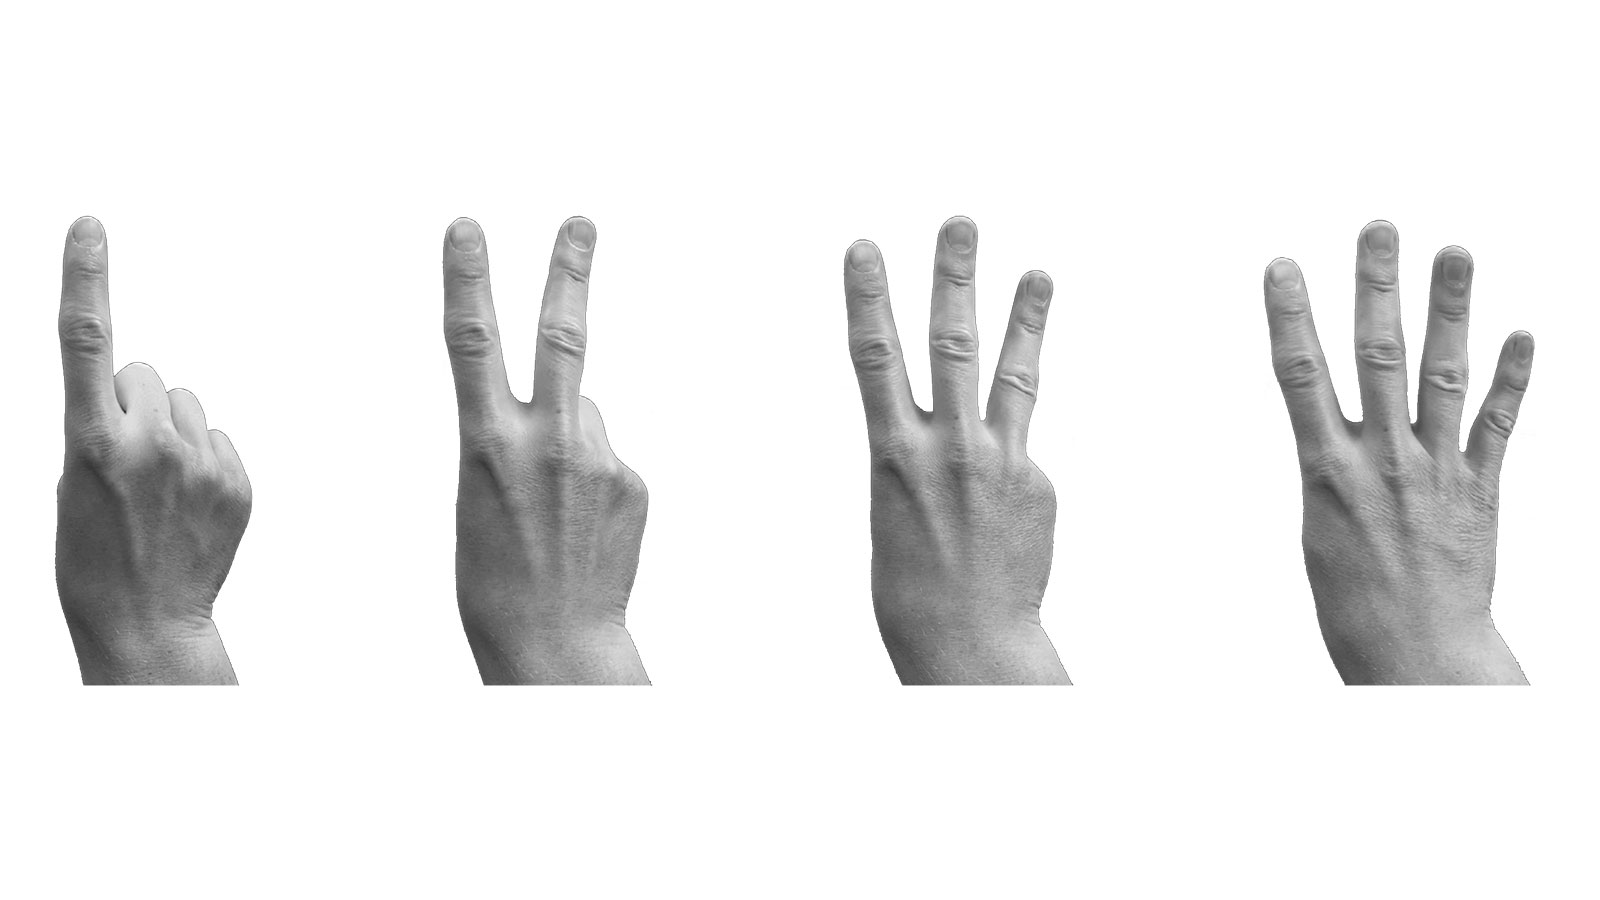 Finger poses for automotive interactions